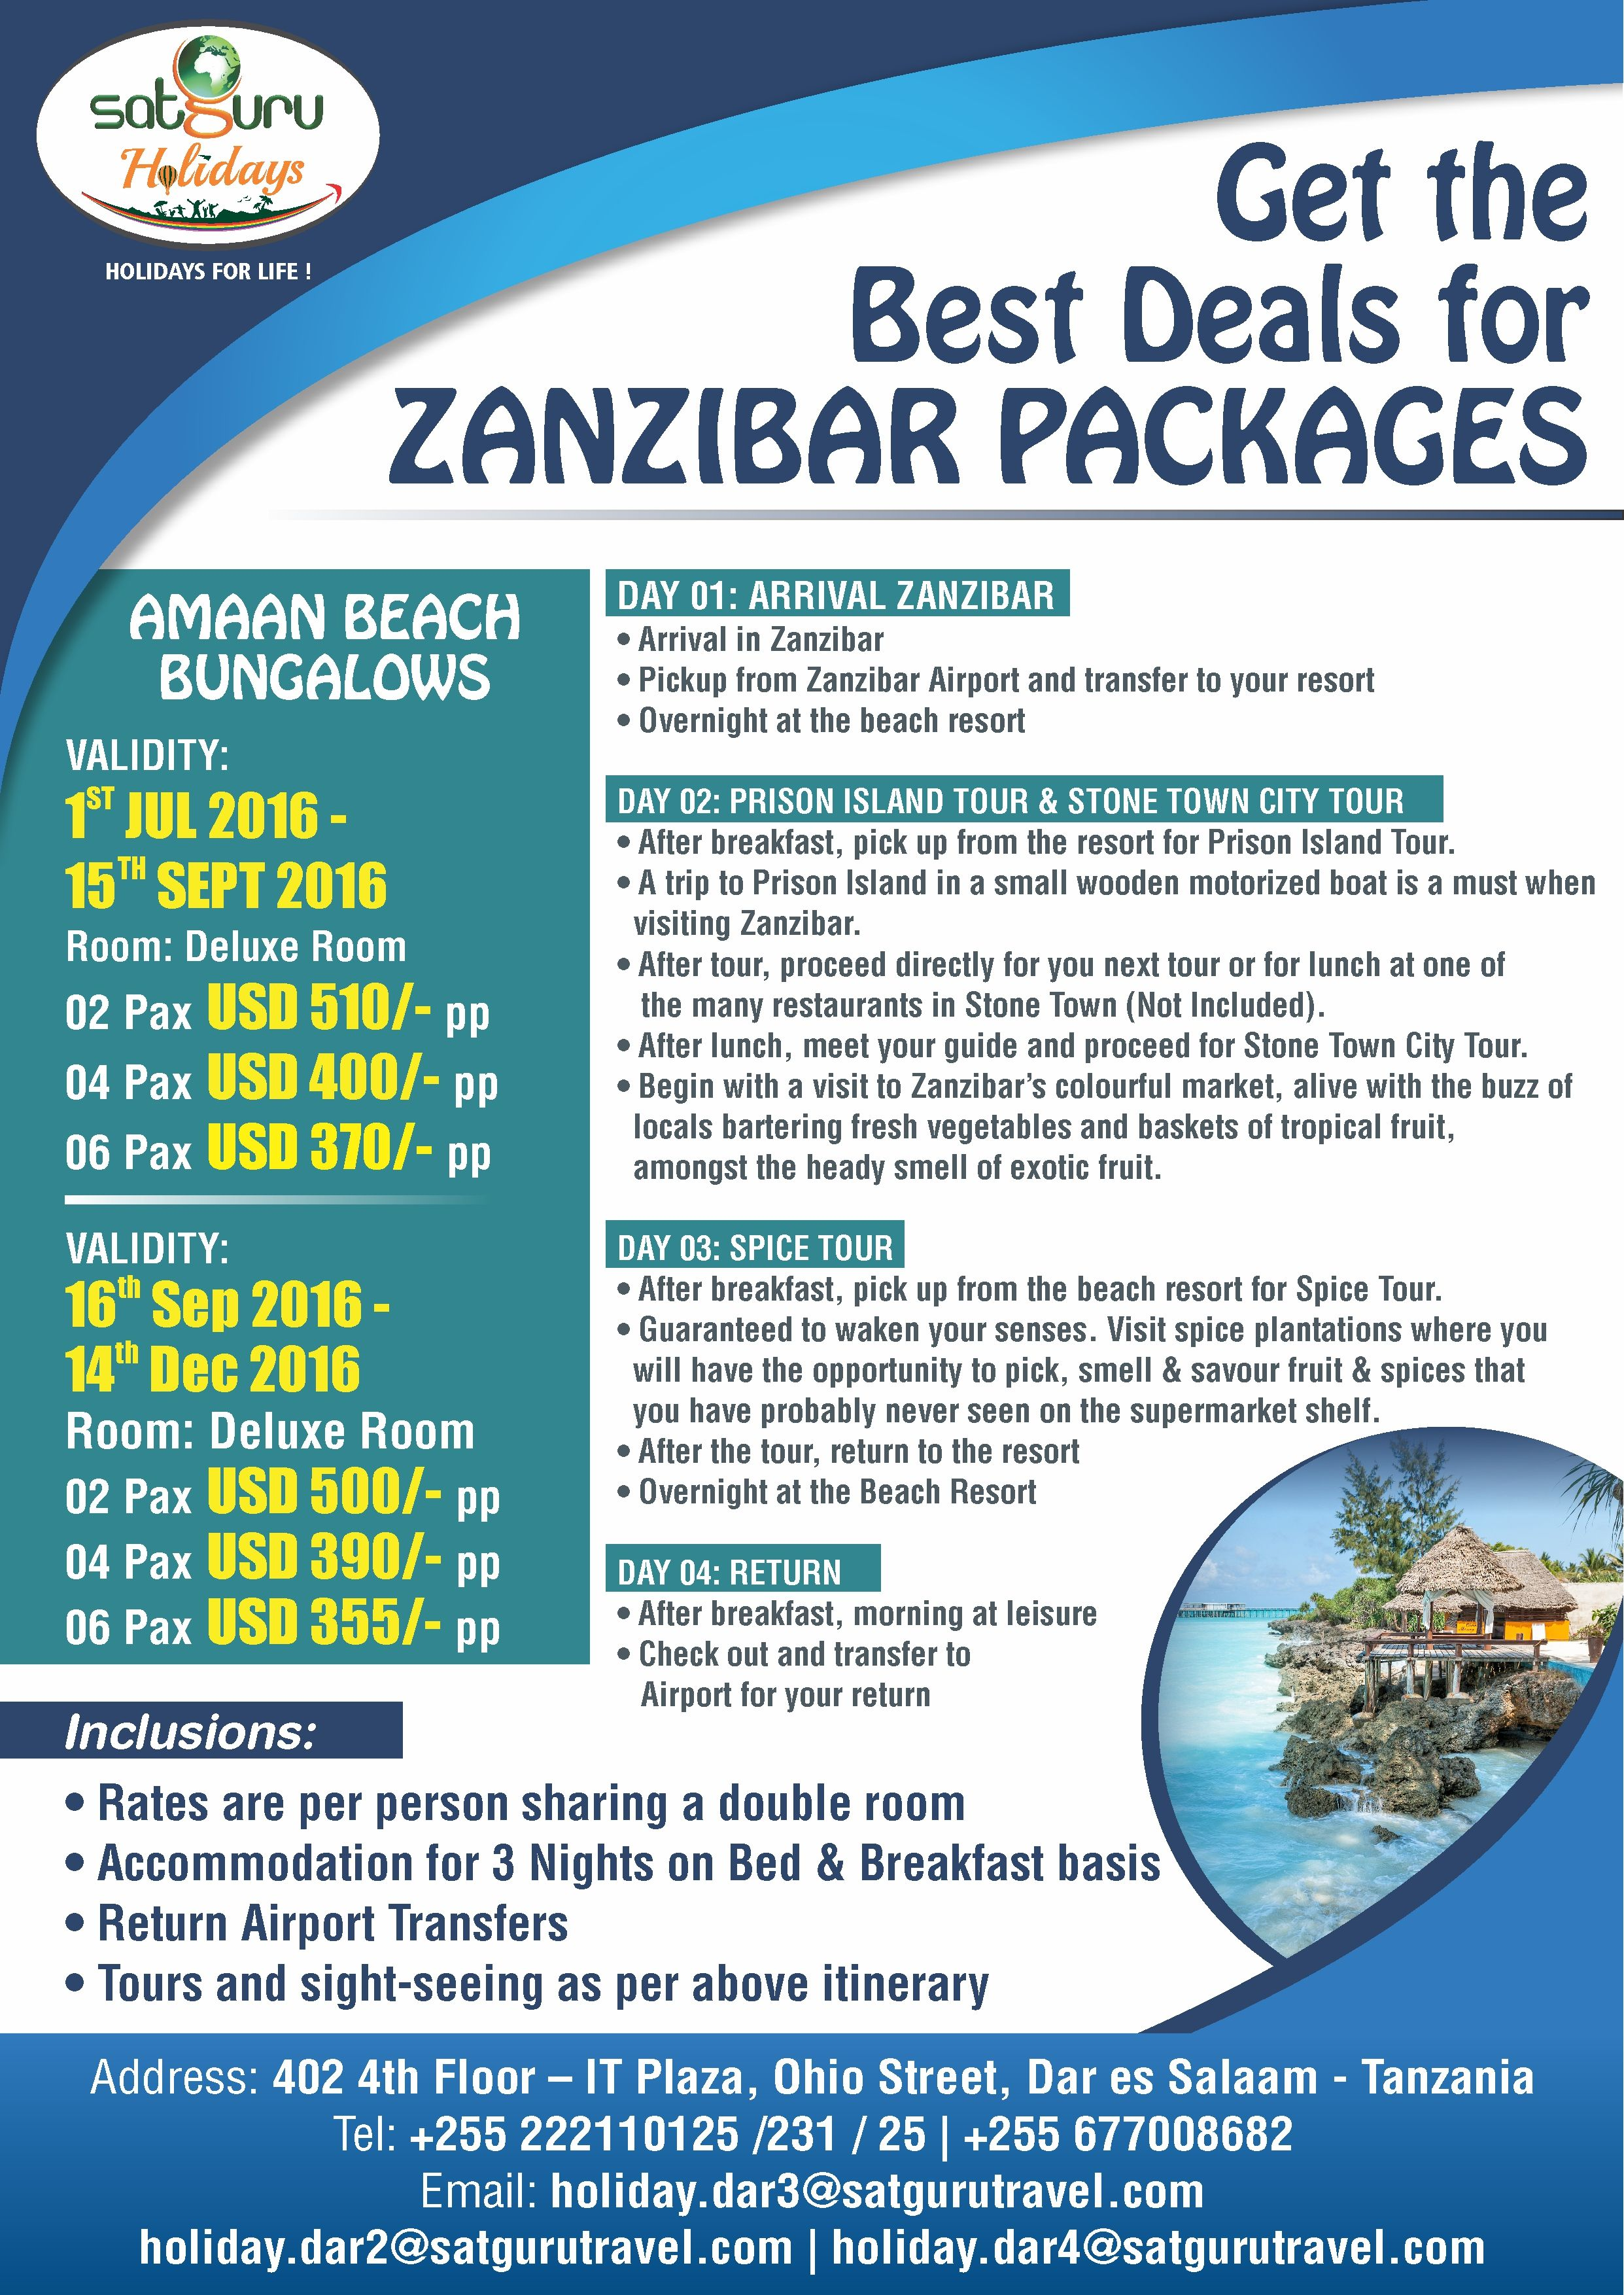 Get the best deals on Zanzibar Holiday Package  Zanzibar